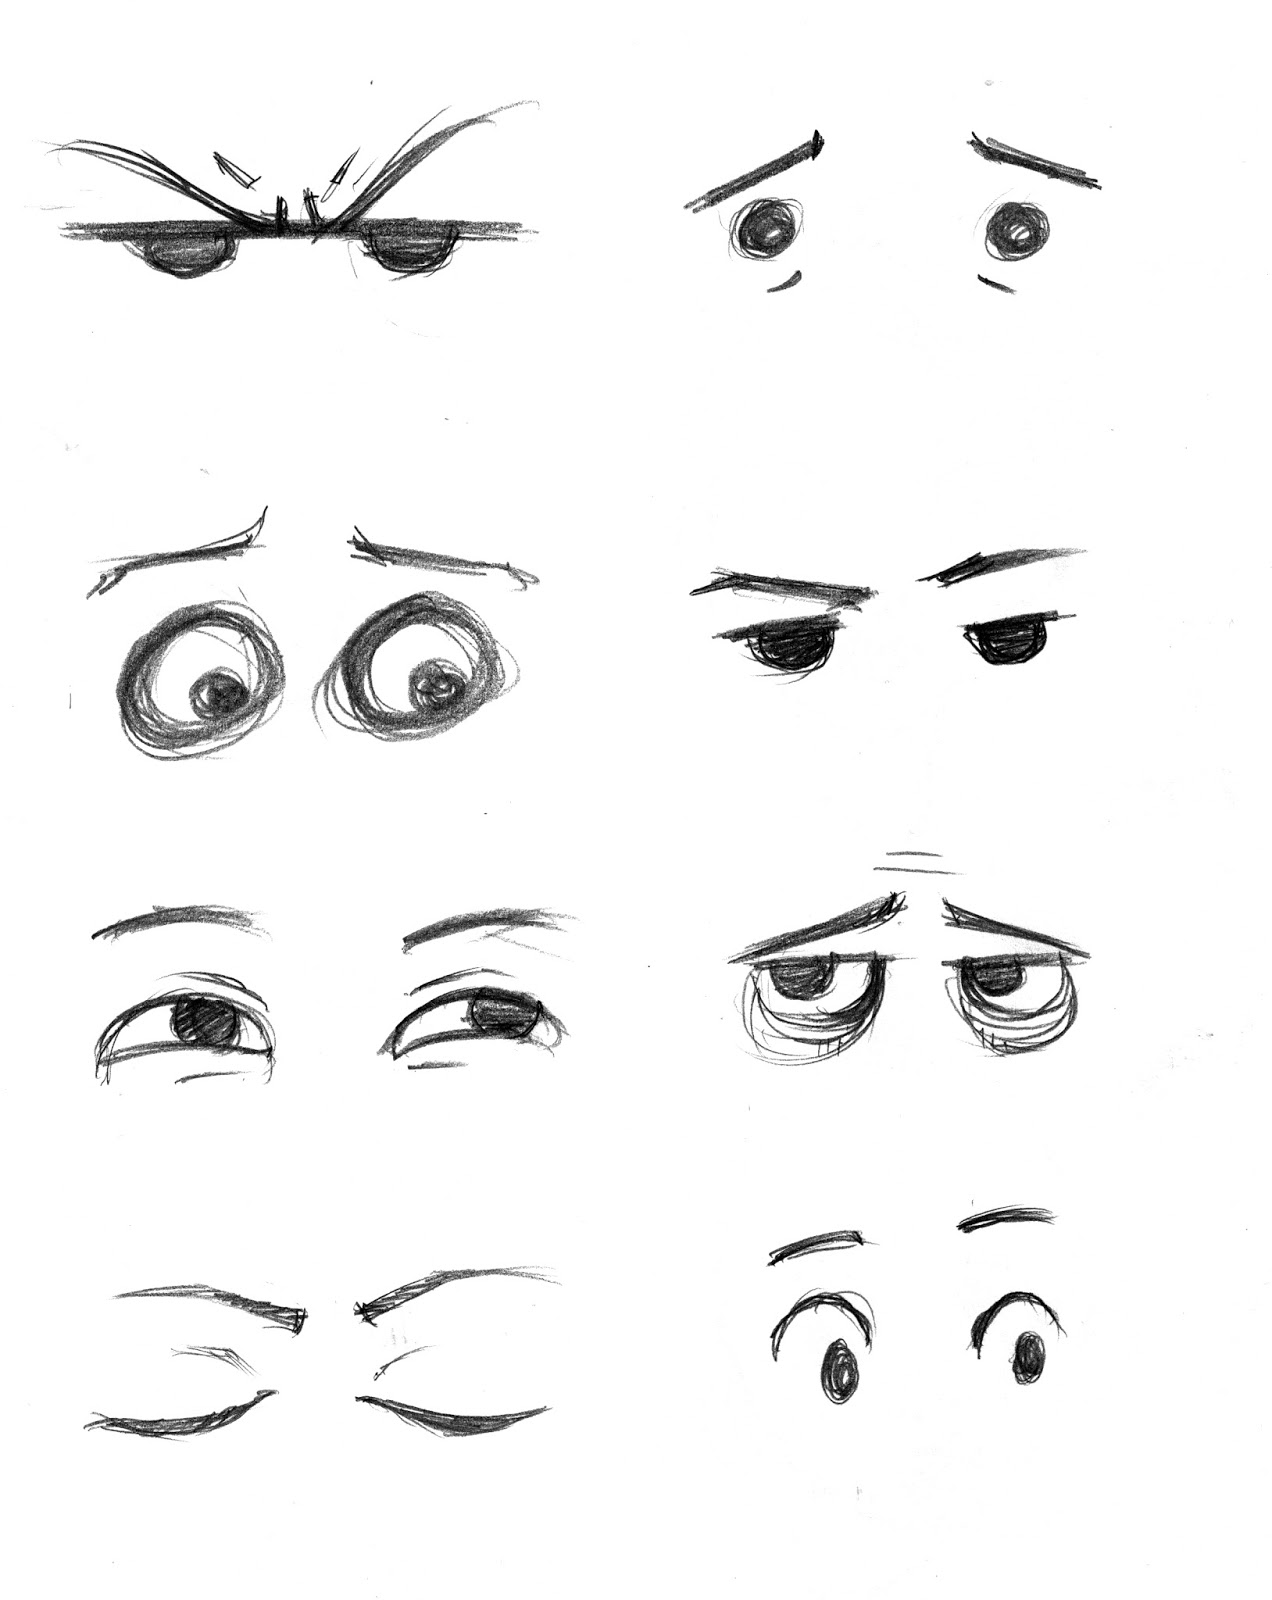 Uncategorized Drawing Lessons brett helquist drawing lesson how to draw eyes and finally a few faces help you see it all fits together have fun if like this check out some of the other lessons